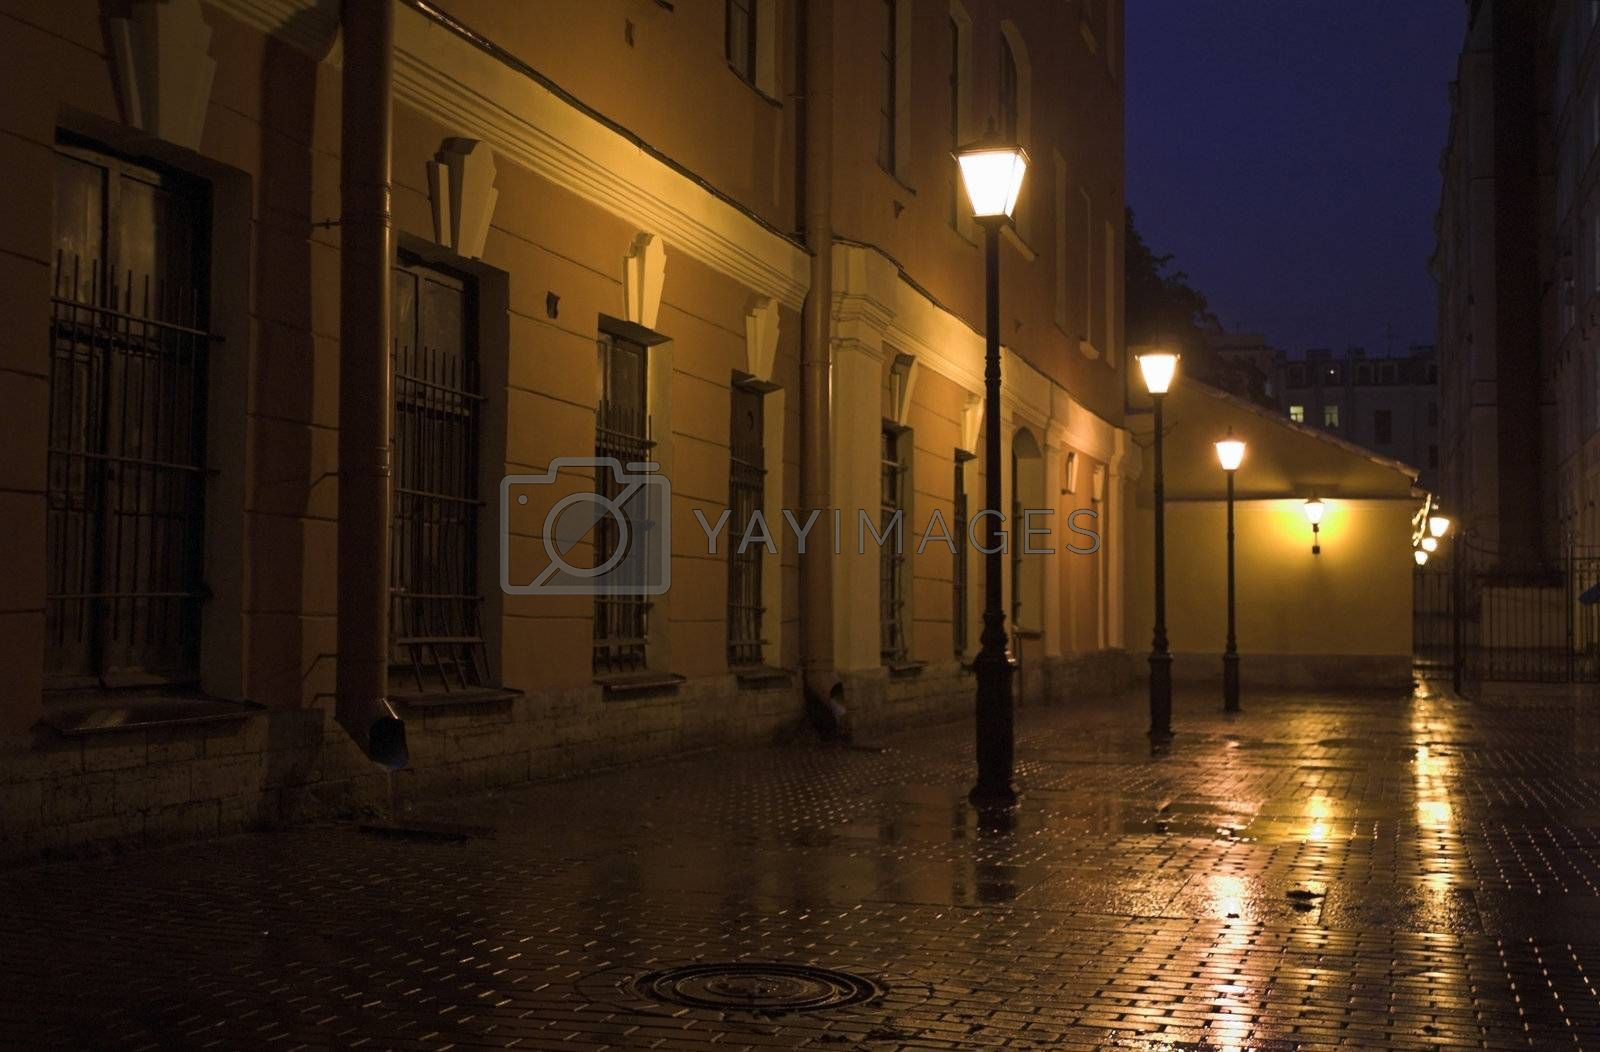 Yard with street lamps and stone pavement at evening in Saint Petersburg, Russia.